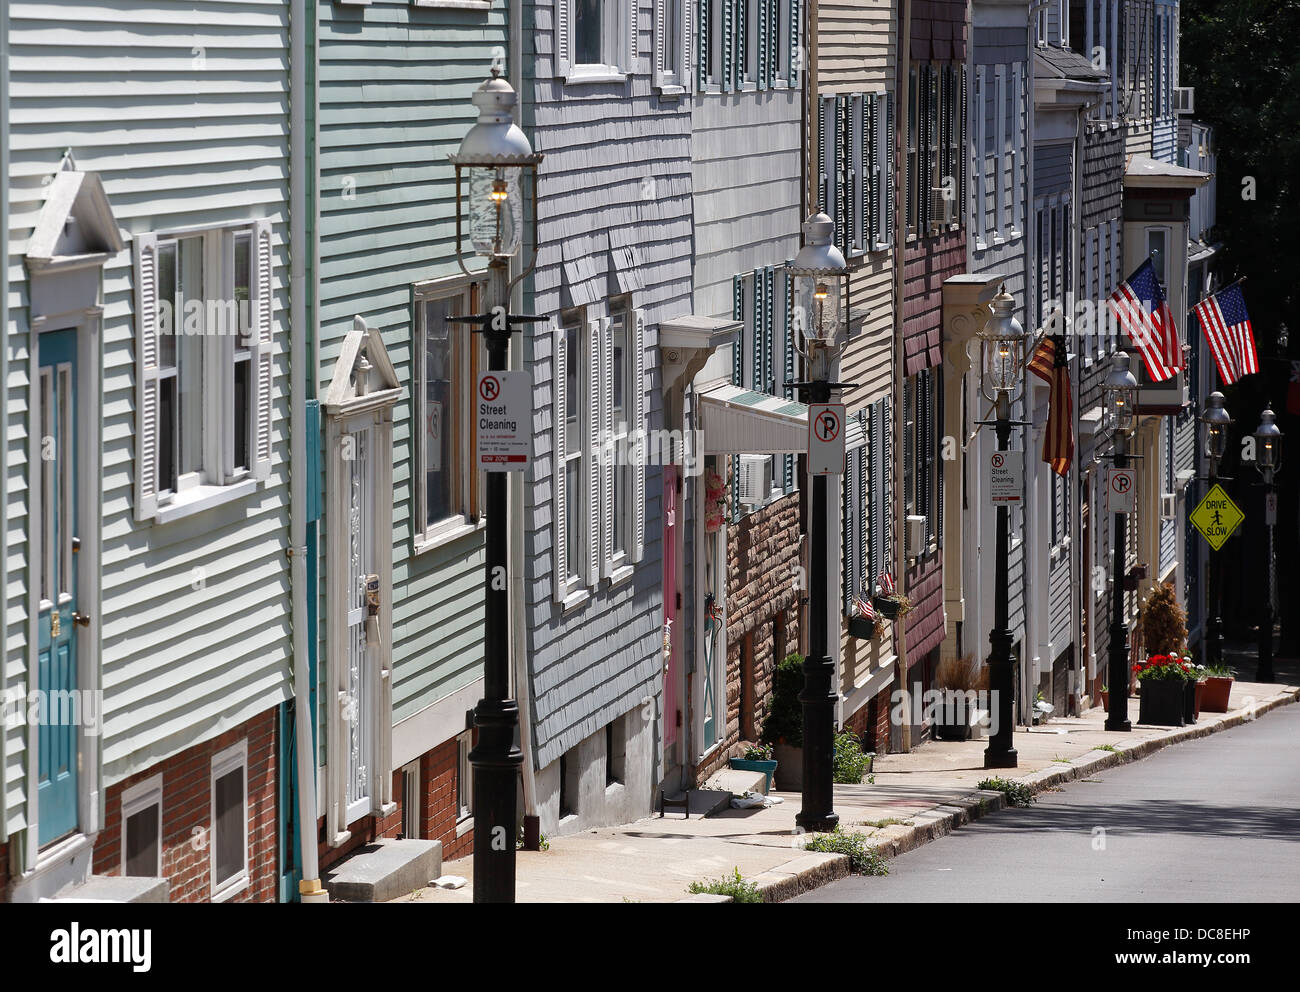 Gas lamps and row houses leading up to Bunker Hill Monument on the Freedom Trail, Boston, Massachusetts - Stock Image